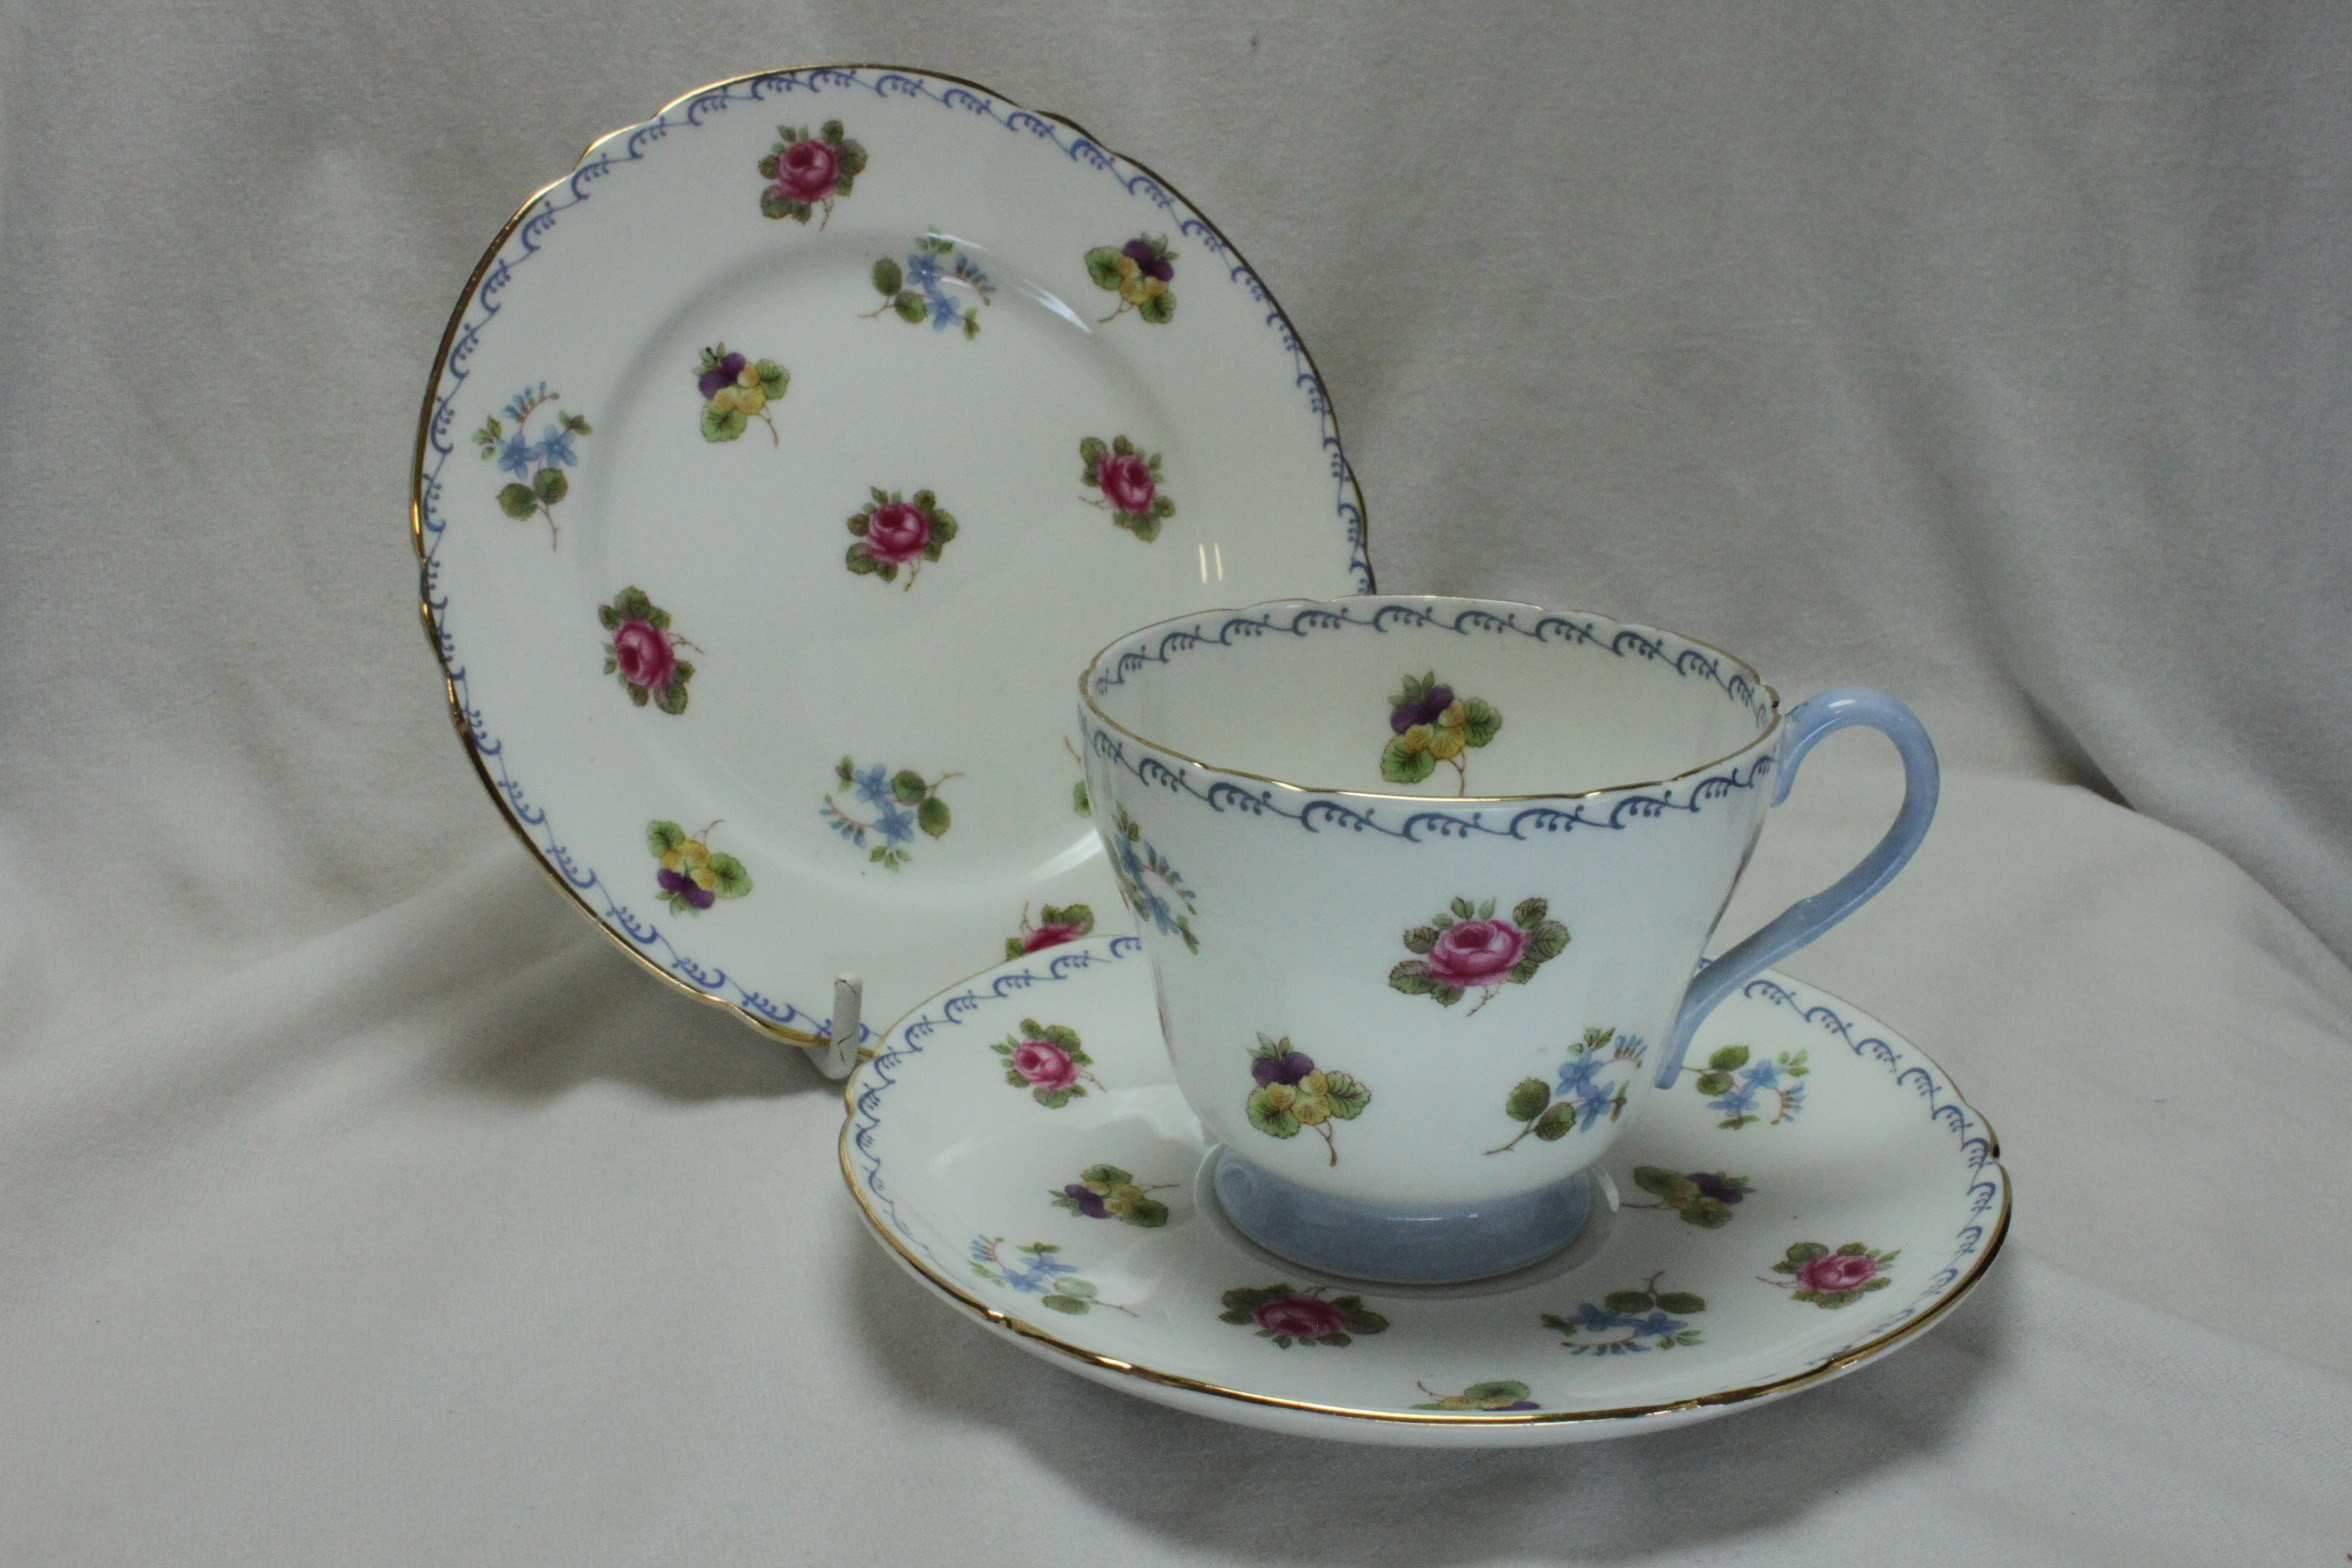 Shelley cup saucer and plate Roses Pansies & Forget-me-nots pattern 13518